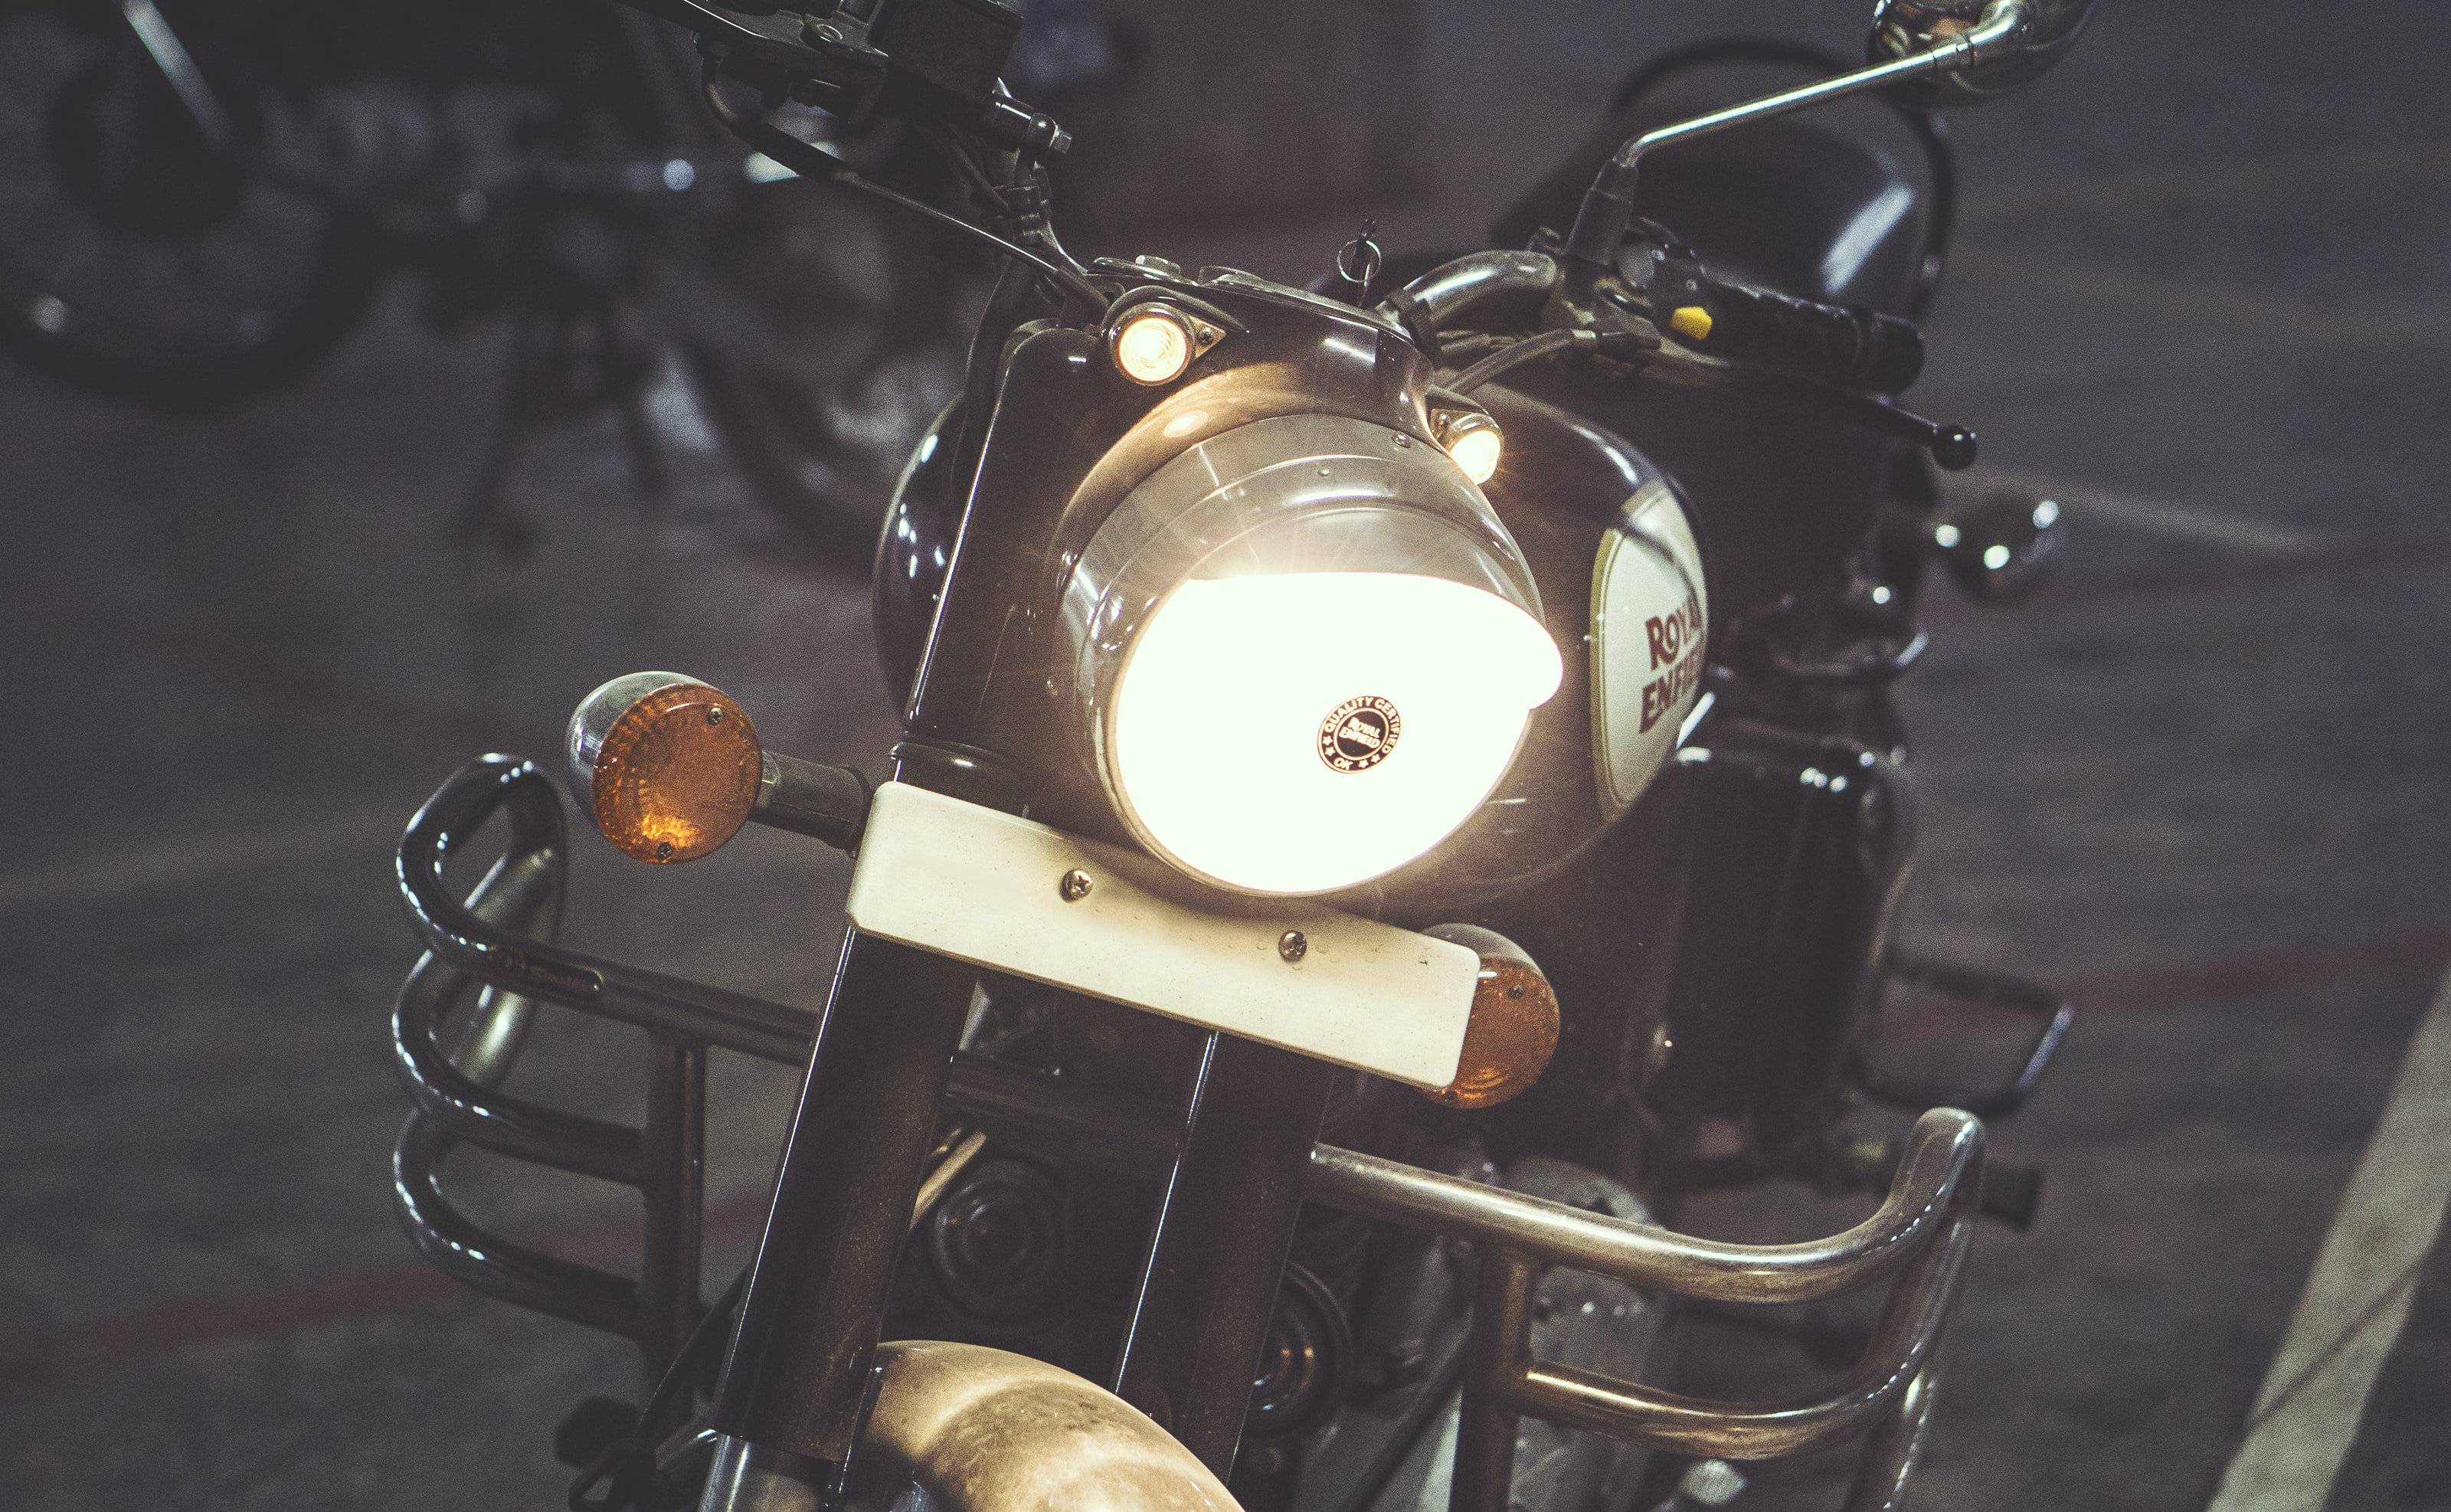 A motorcycle with its headlight on parked